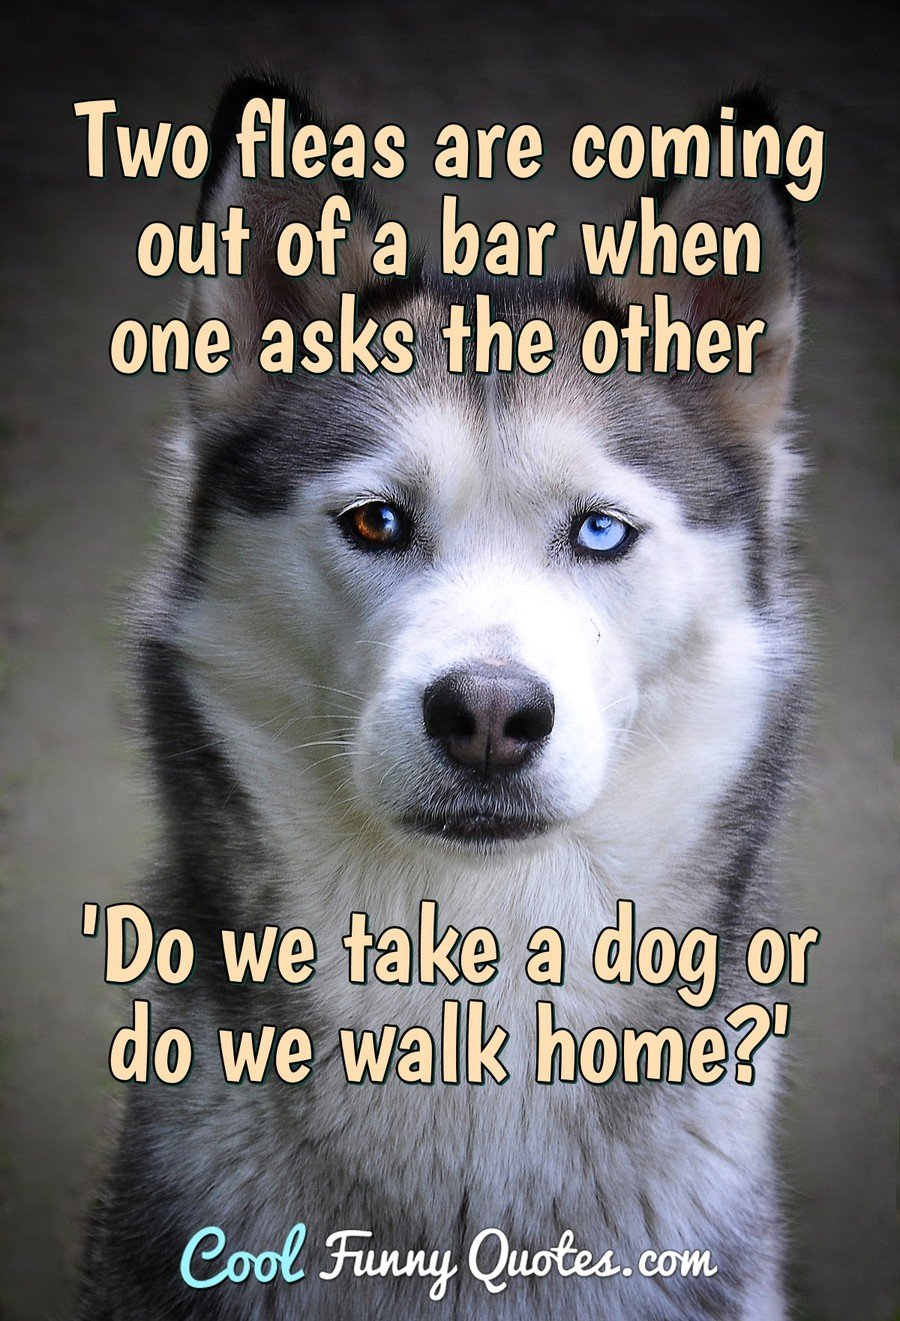 Two fleas are coming out of a bar when one asks the other 'Do we take a dog or do we walk home?' - Anonymous